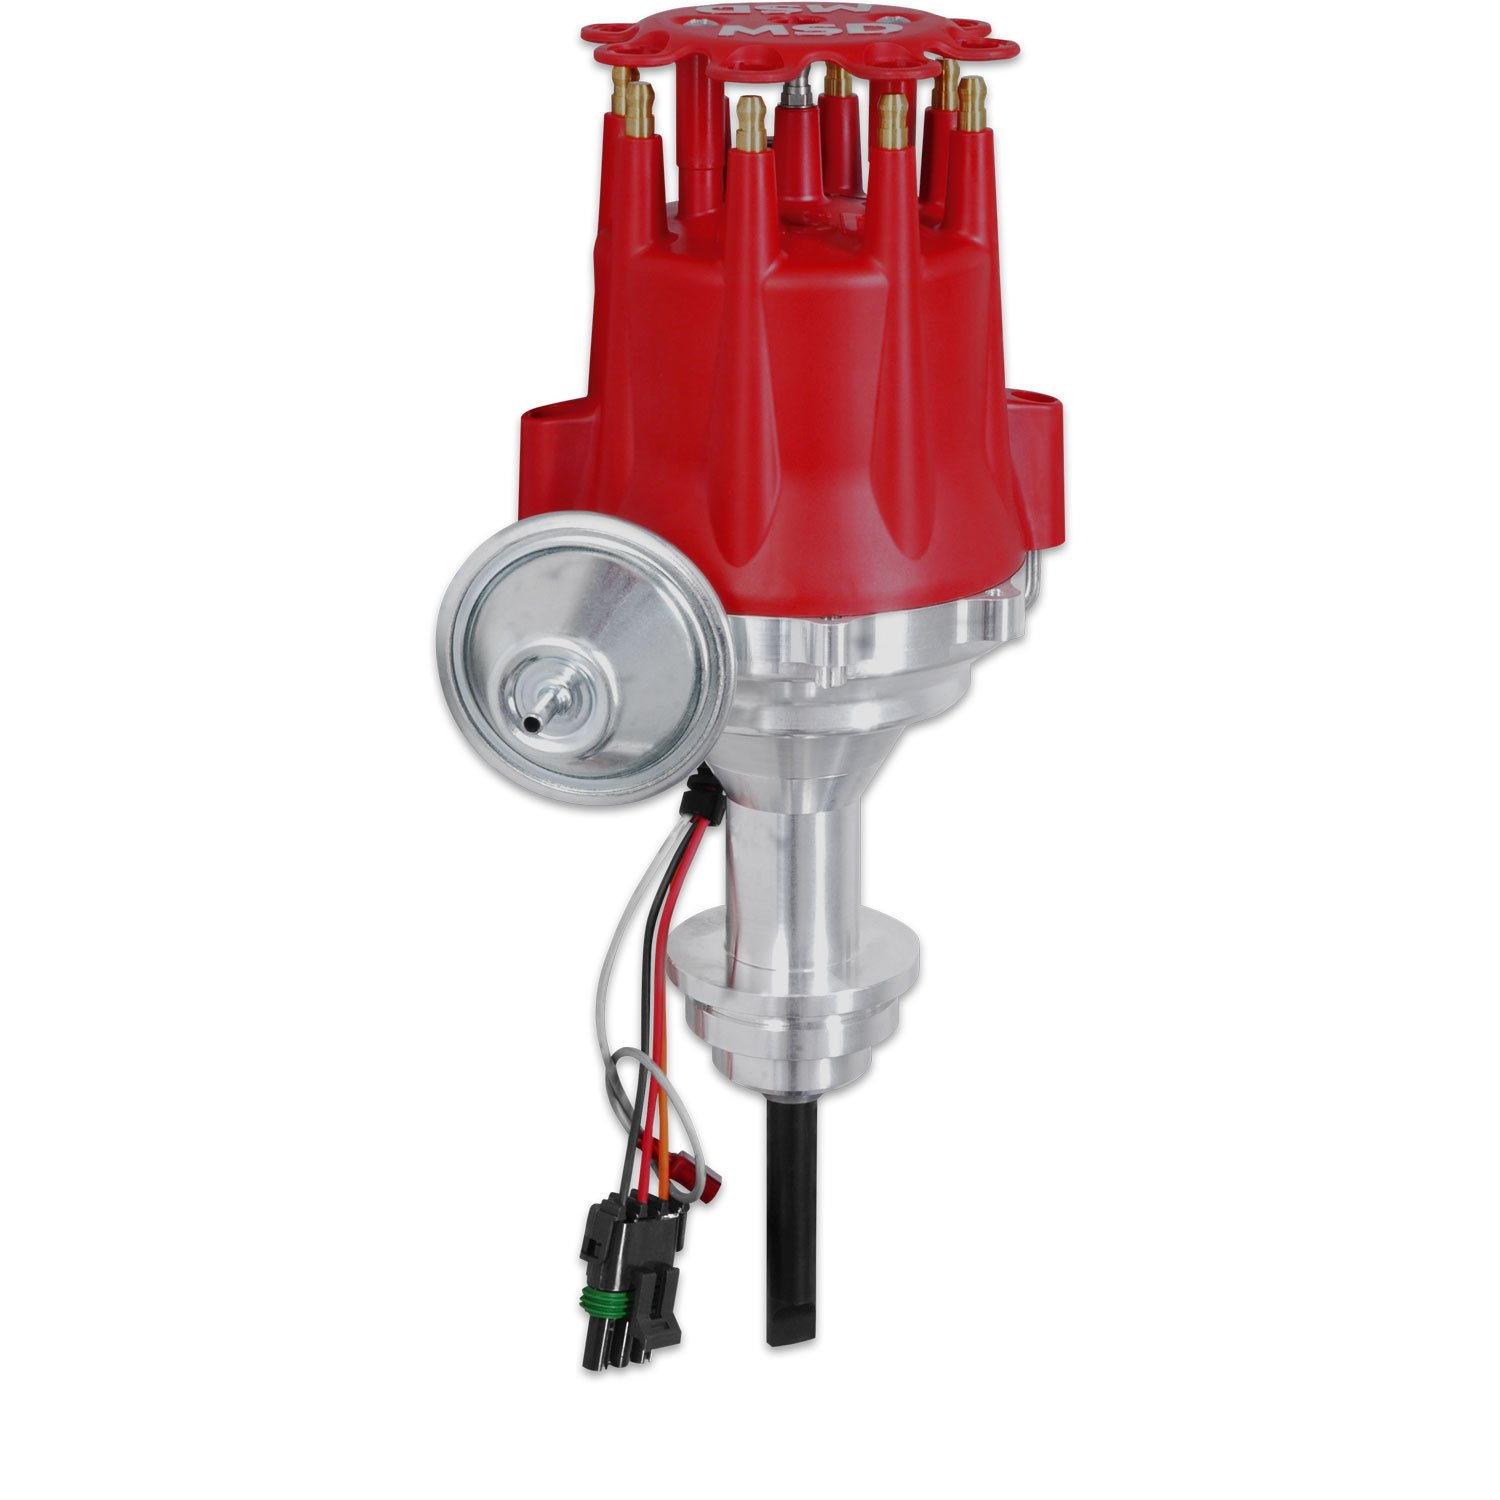 Chrysler 318-360, Ready-to-Run Distributor on